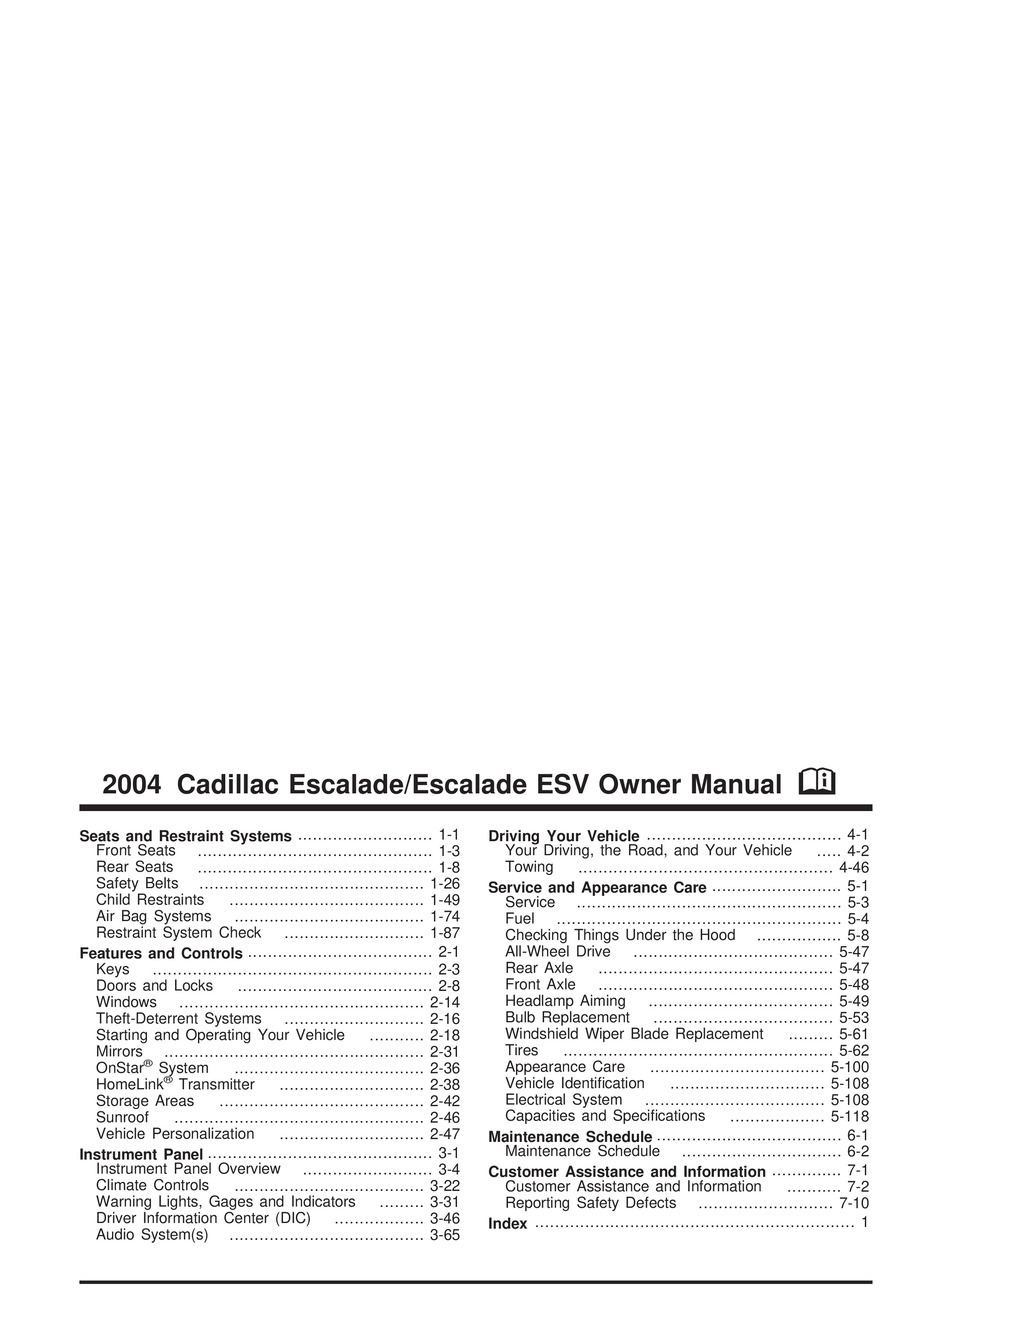 2004 Cadillac Escalade owners manual